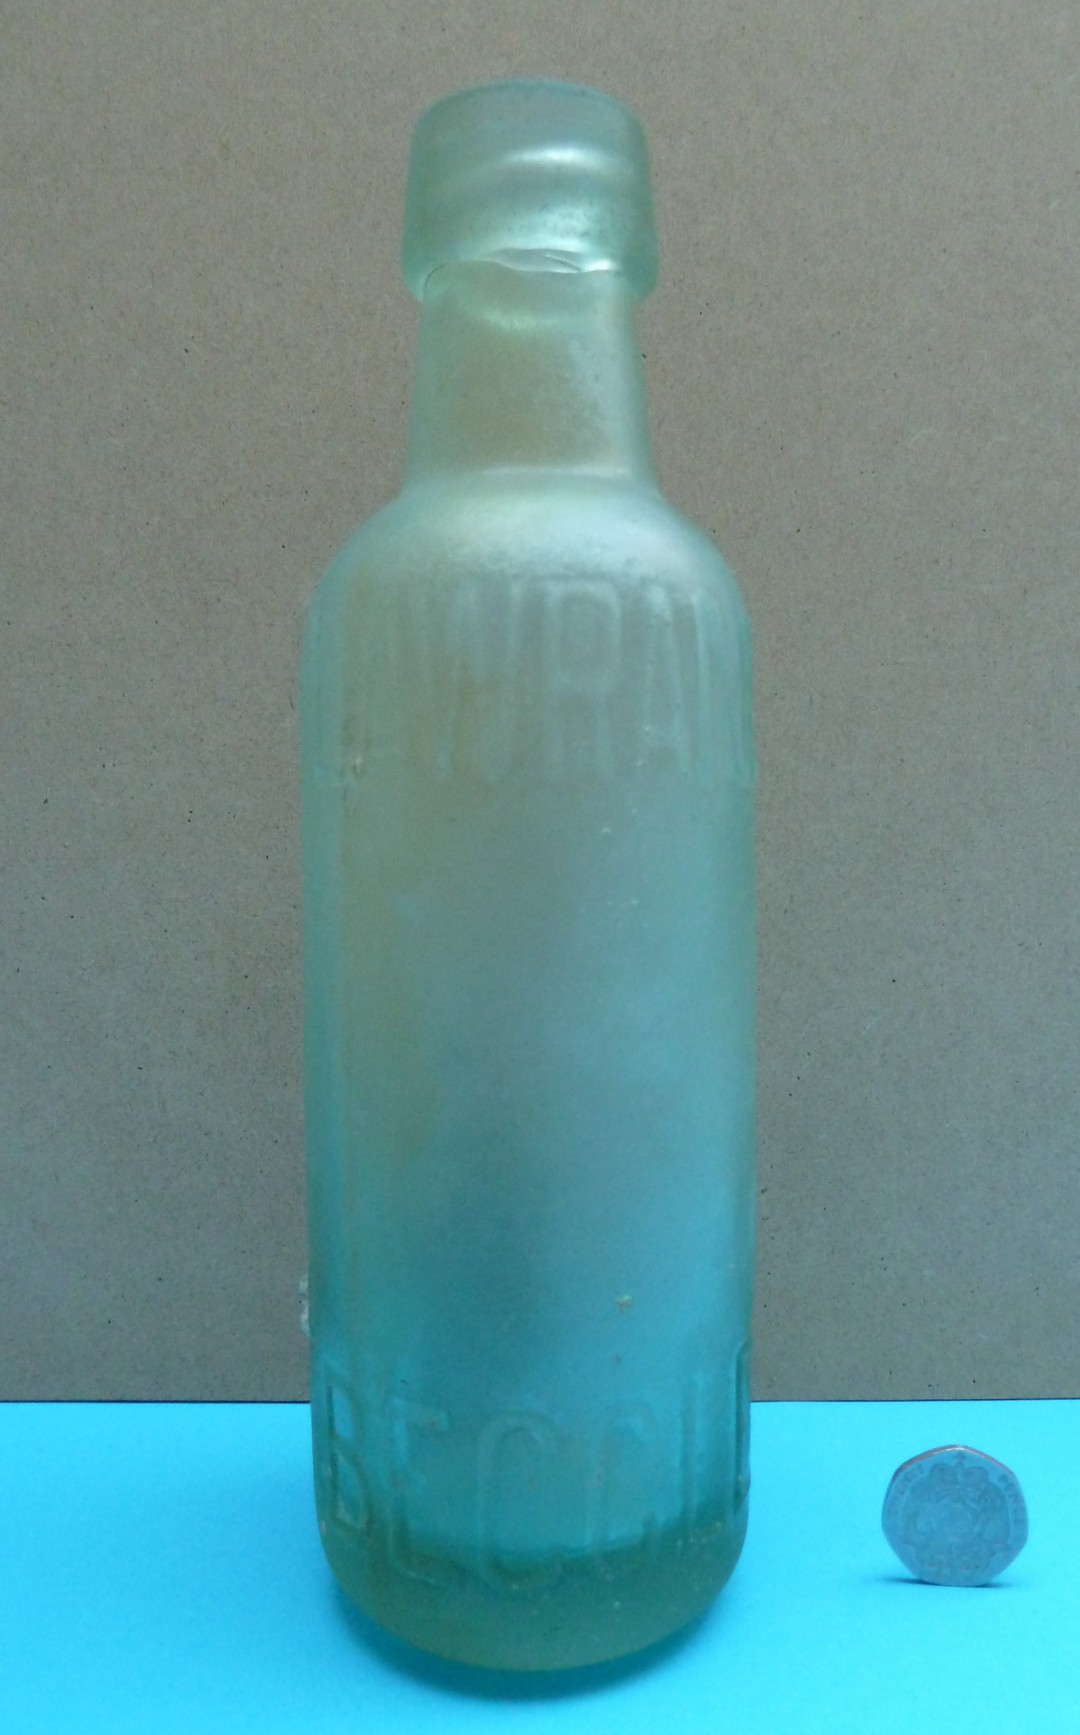 Fizzy Drinks Bottle